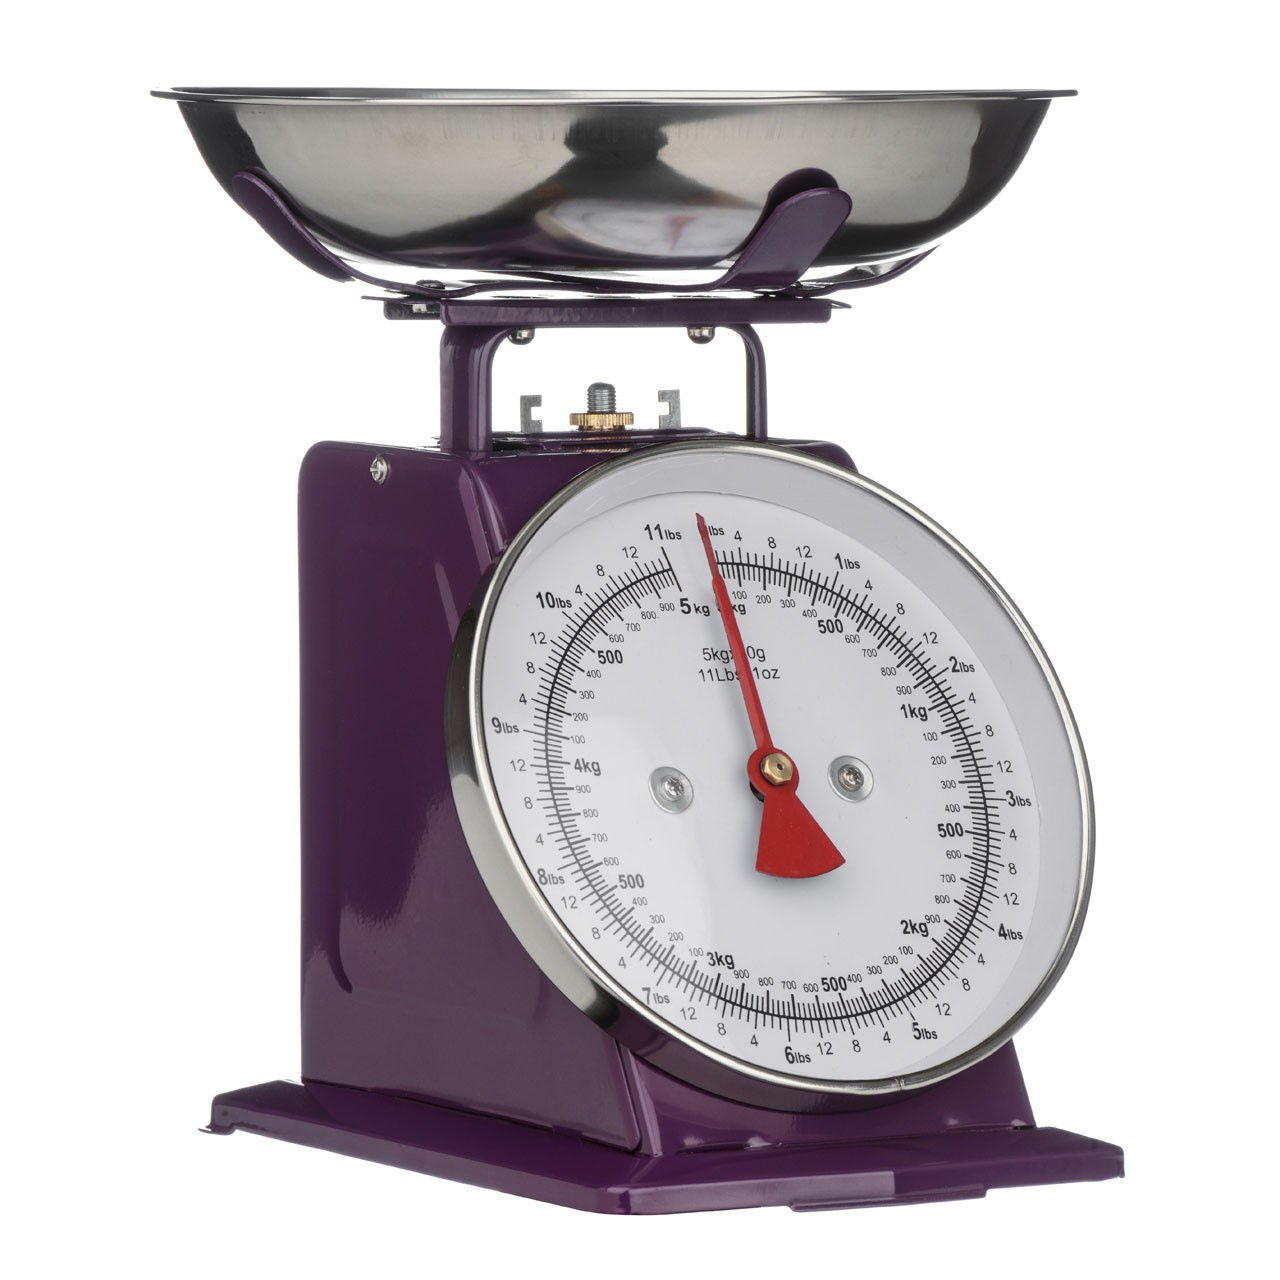 5 Kg Kitchen Scale Retro Style with Stainless Steel Bowl -Purple